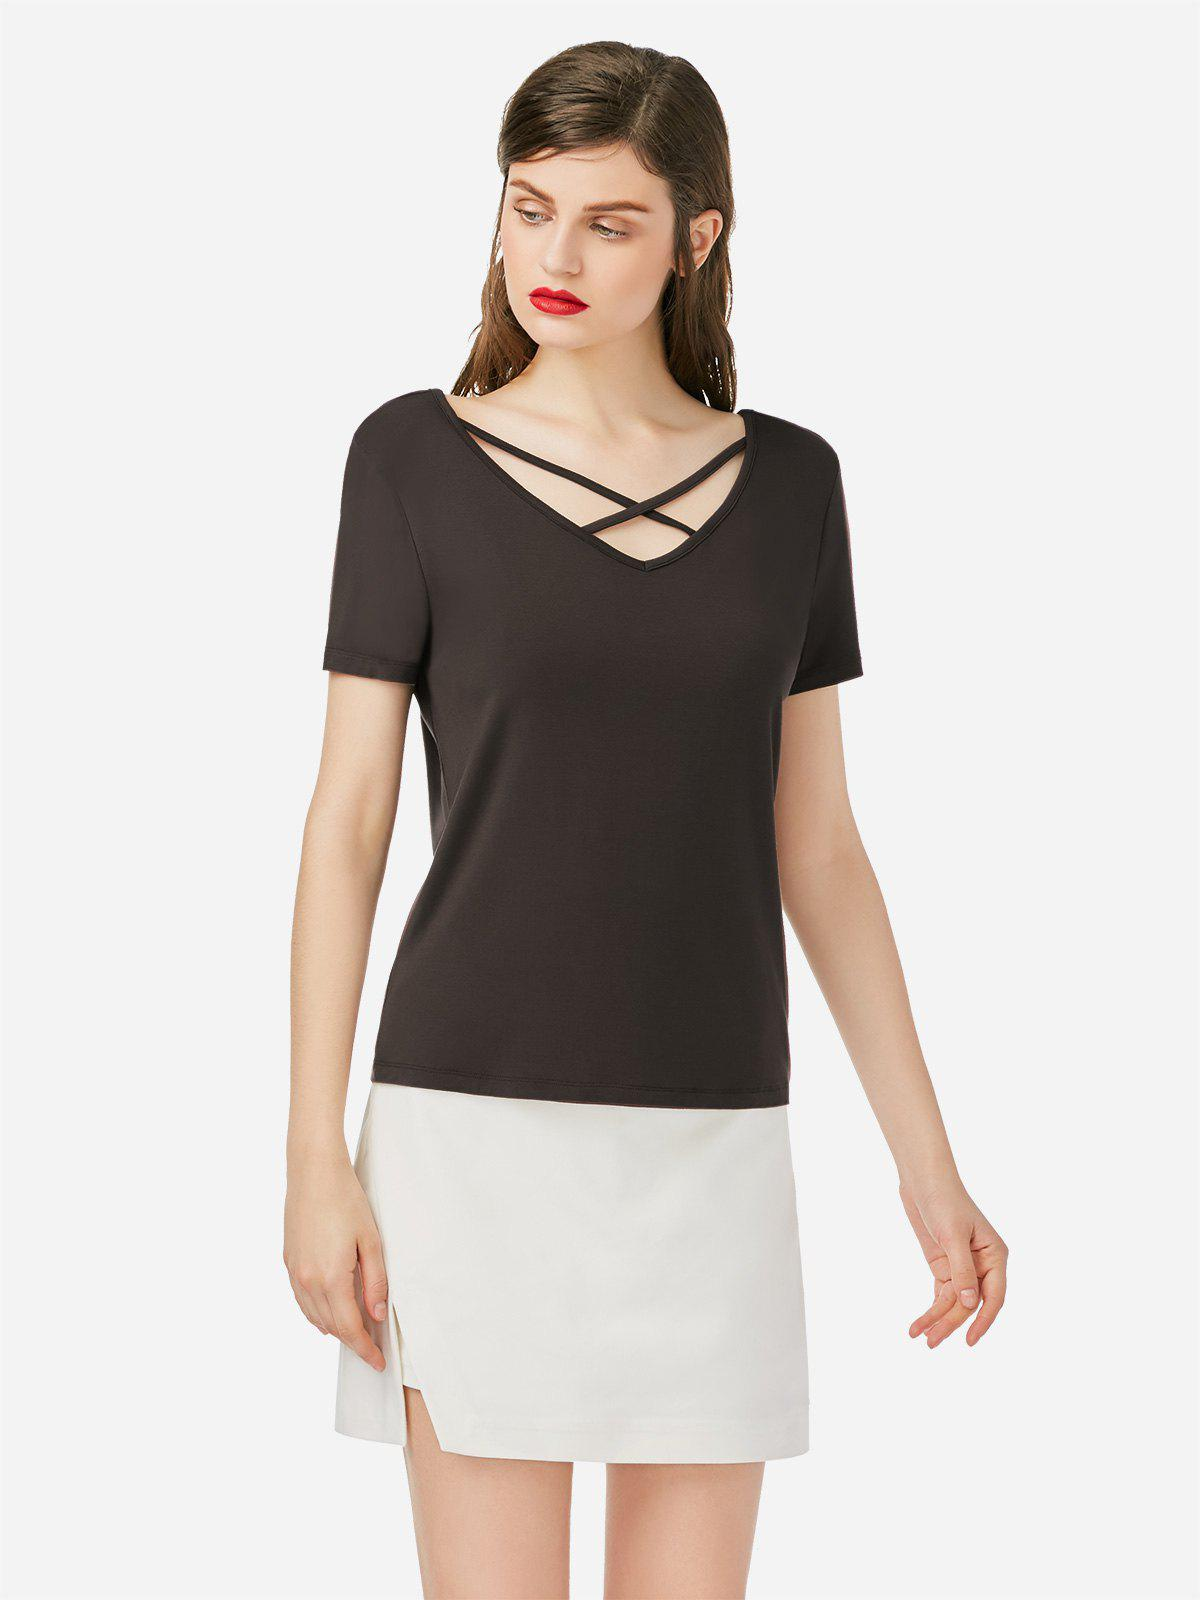 Shop Lace Up V Neck T-shirt